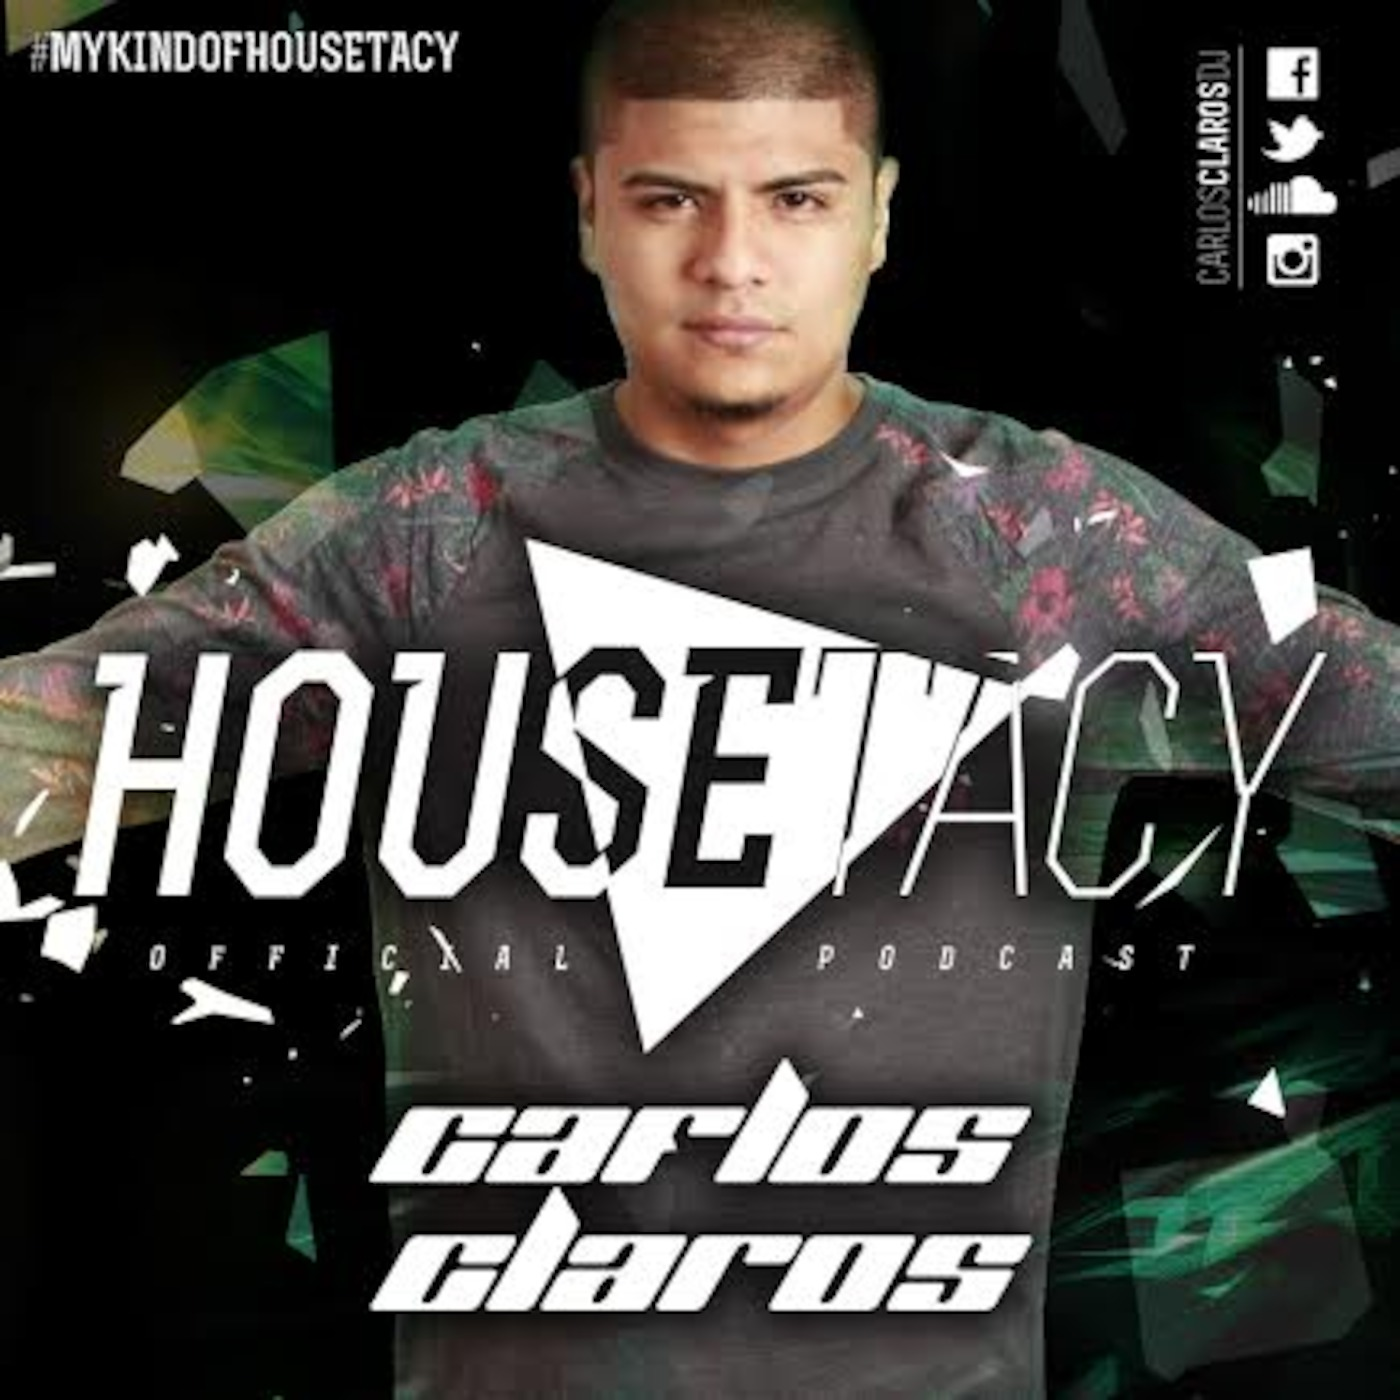 Housetacy Podcast